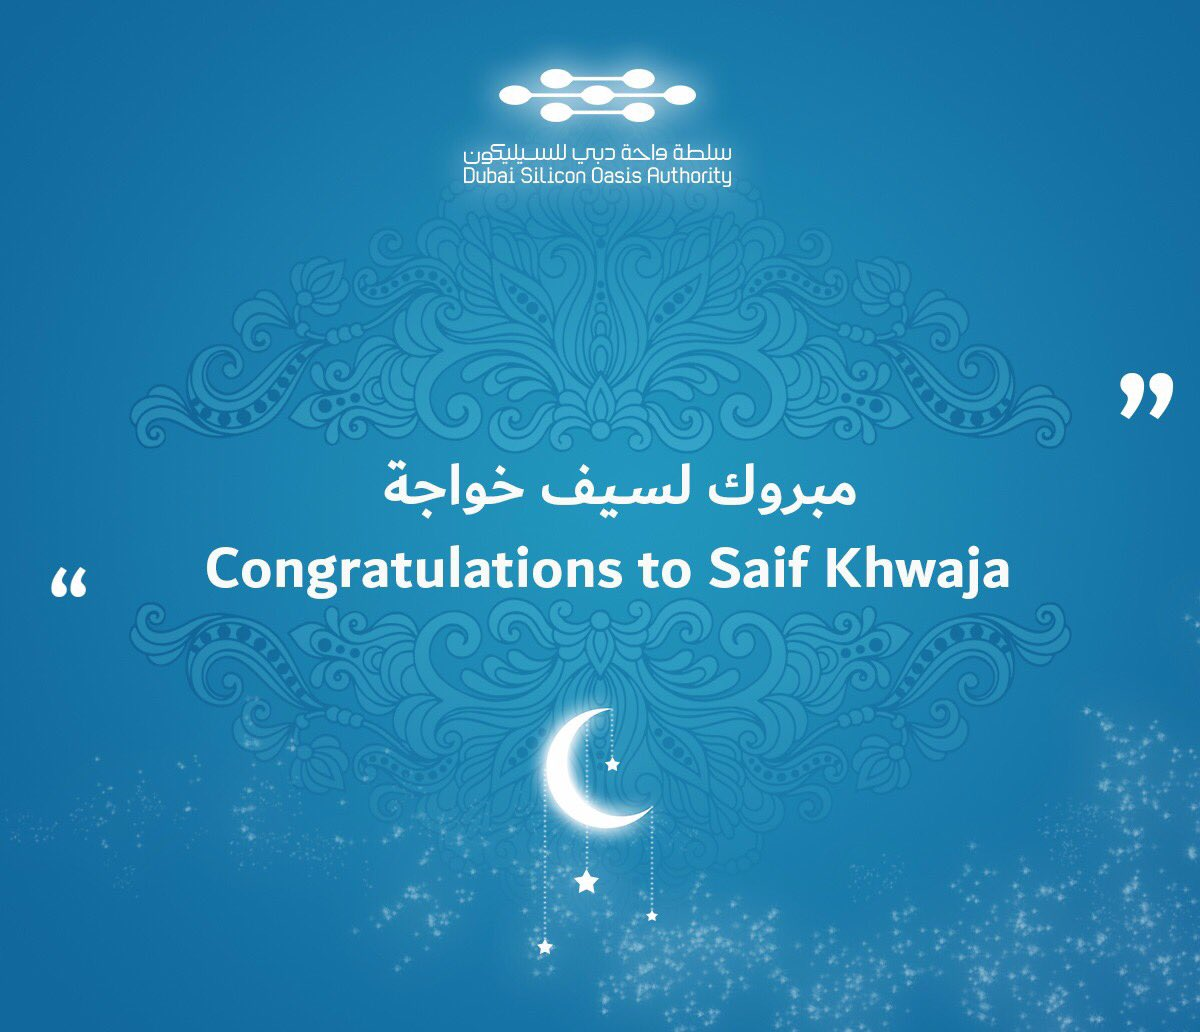 Congratulations to khwaja saif sophies kitchen and duaa al haddad for winning an iftar for 4 at alarrabrest in dso